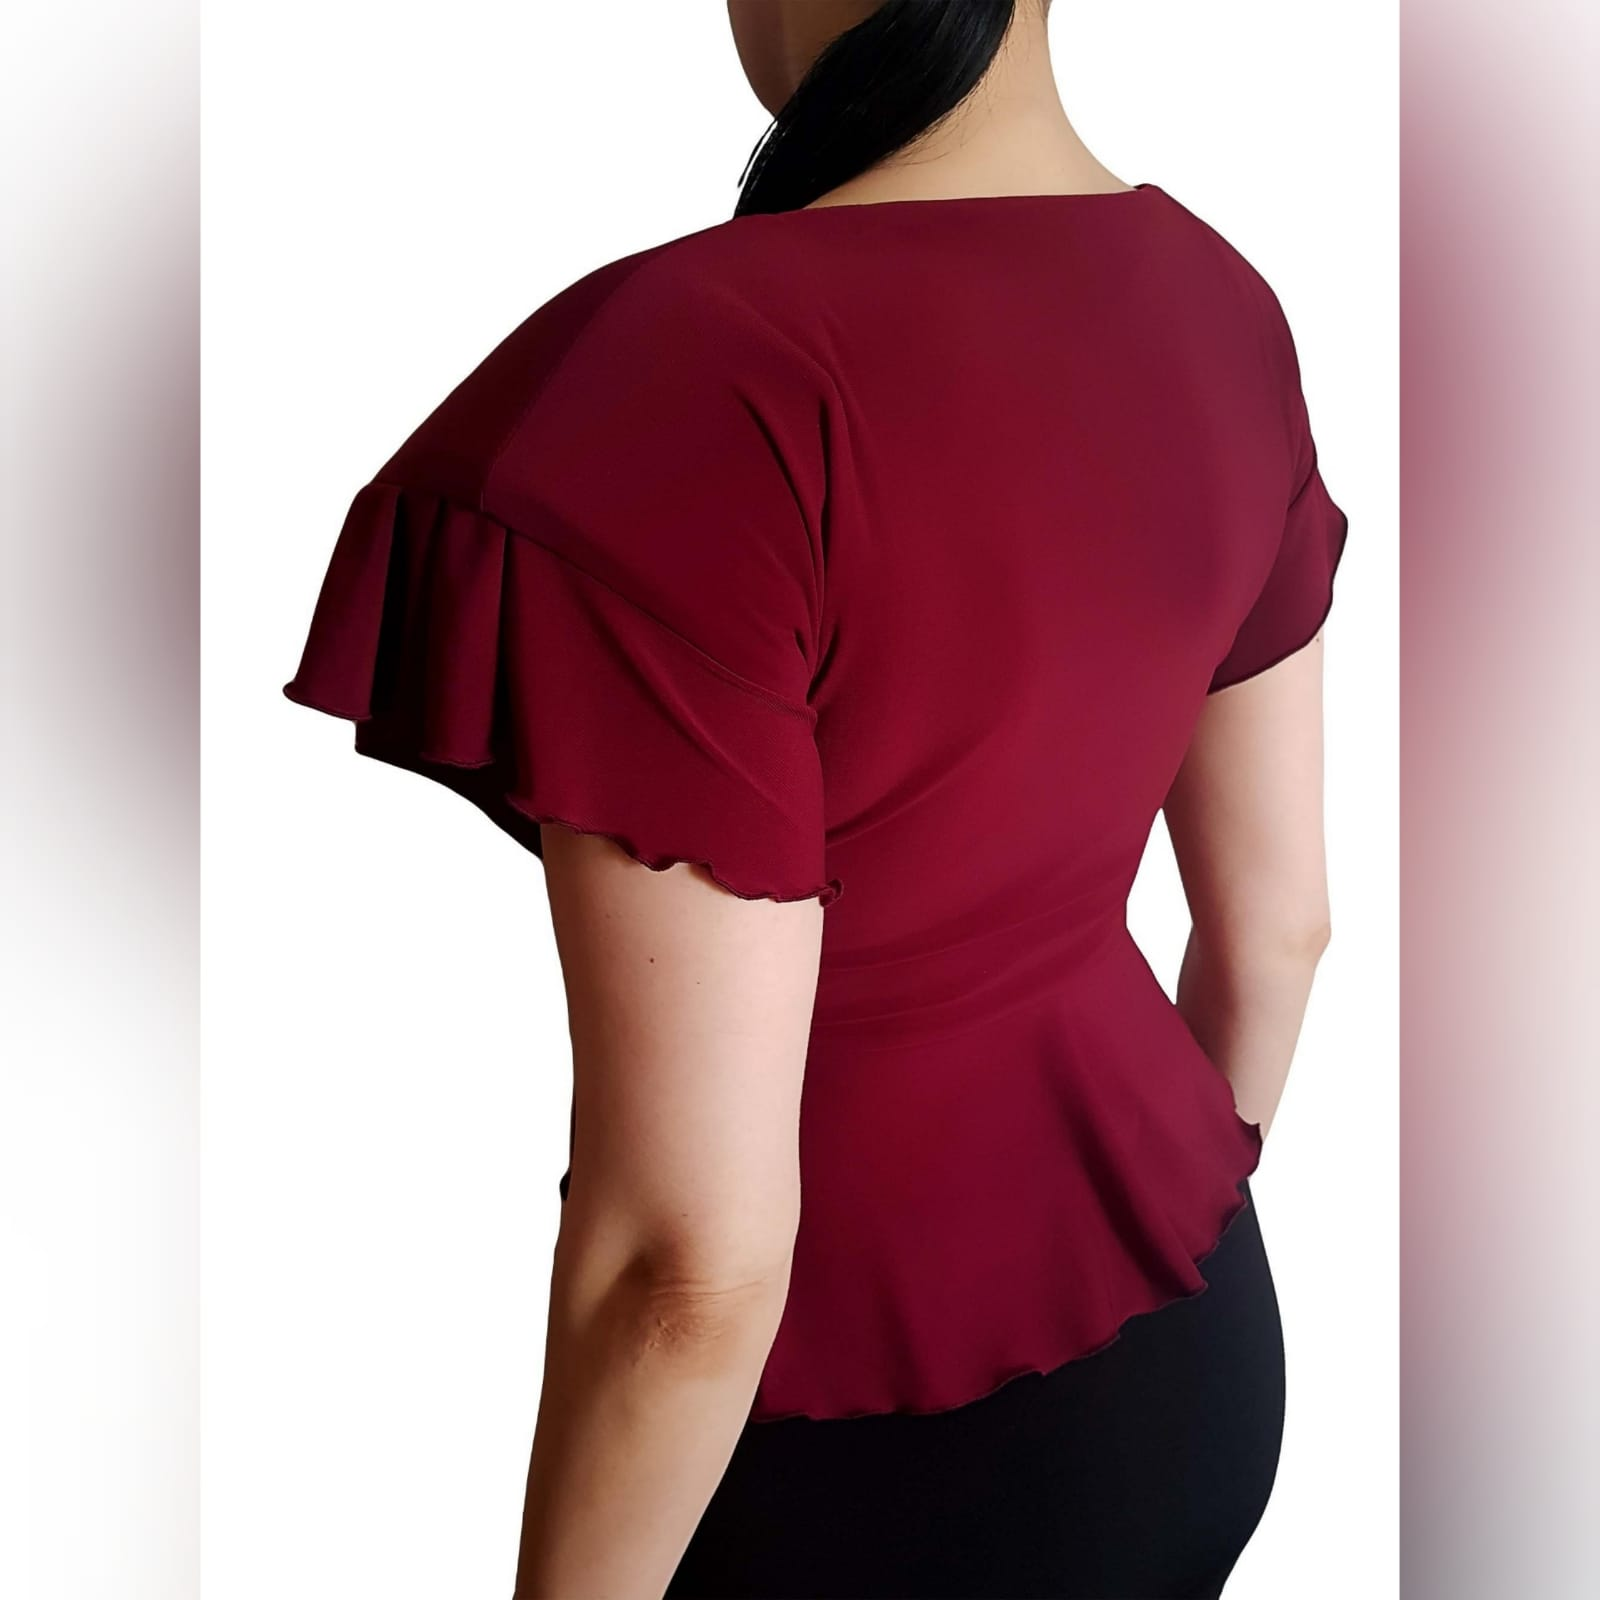 Maroon sexy casual top high waist peplum 3 maroon sexy casual top, with a high waist peplum. Lace-up detail in the front to adjust fit. This elegant top has dramatic shoulders which adds a touch of couture to the look. Handmade top, unique look, and a special piece that you can add to your wardrobe. We offer this high shoulder top in several colours.